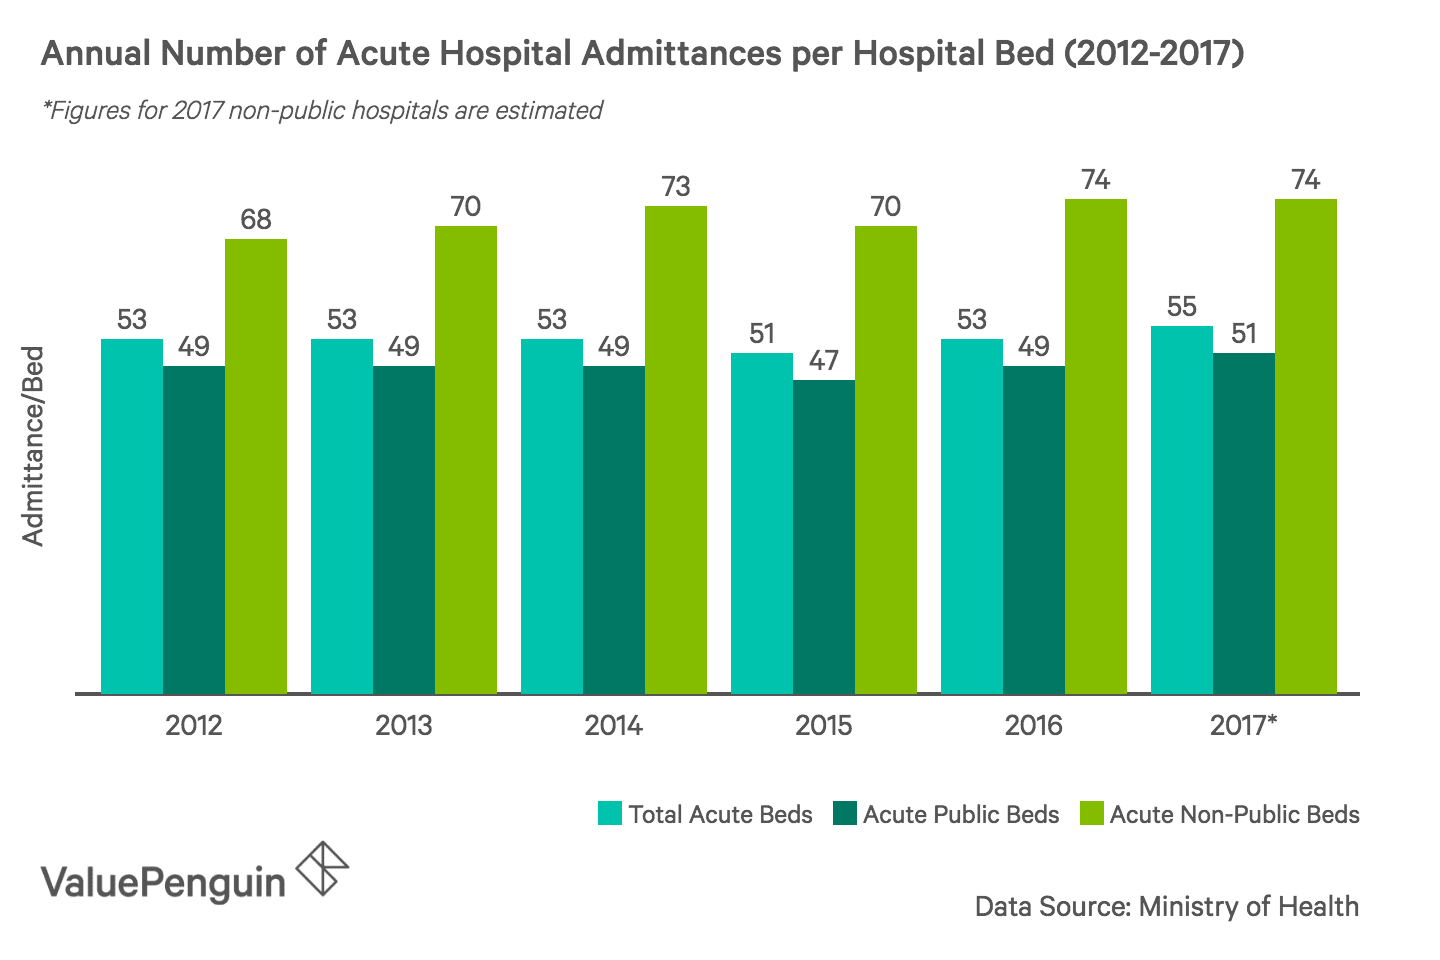 This graph shows the number of annual patients in acute hospitals per number of bed